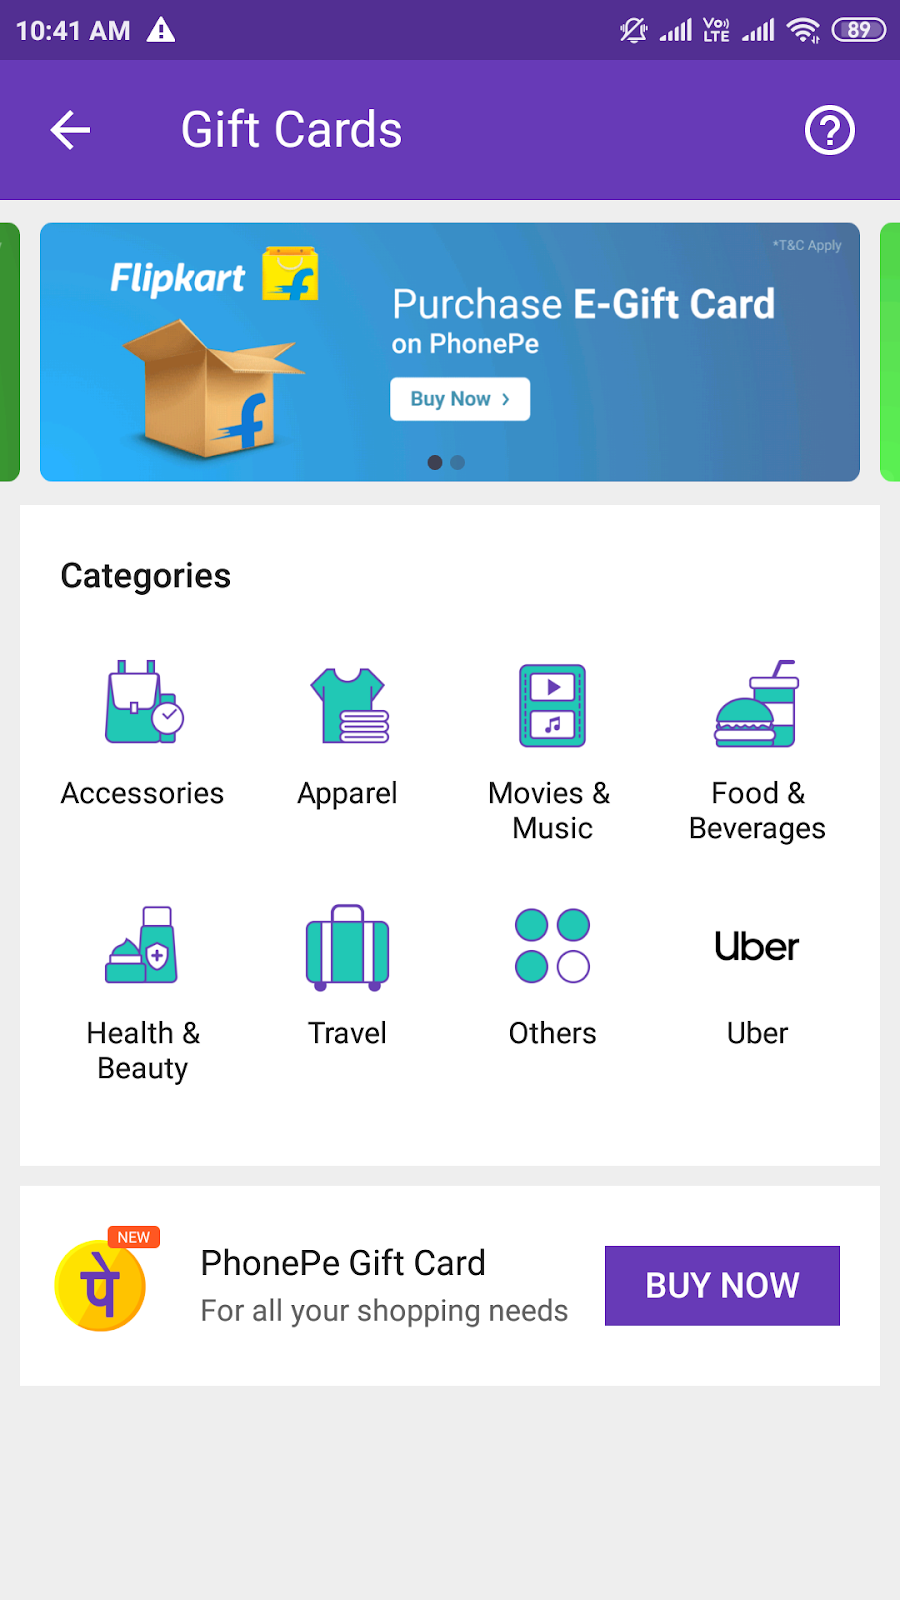 Steps to purchase Phonepe gift cards